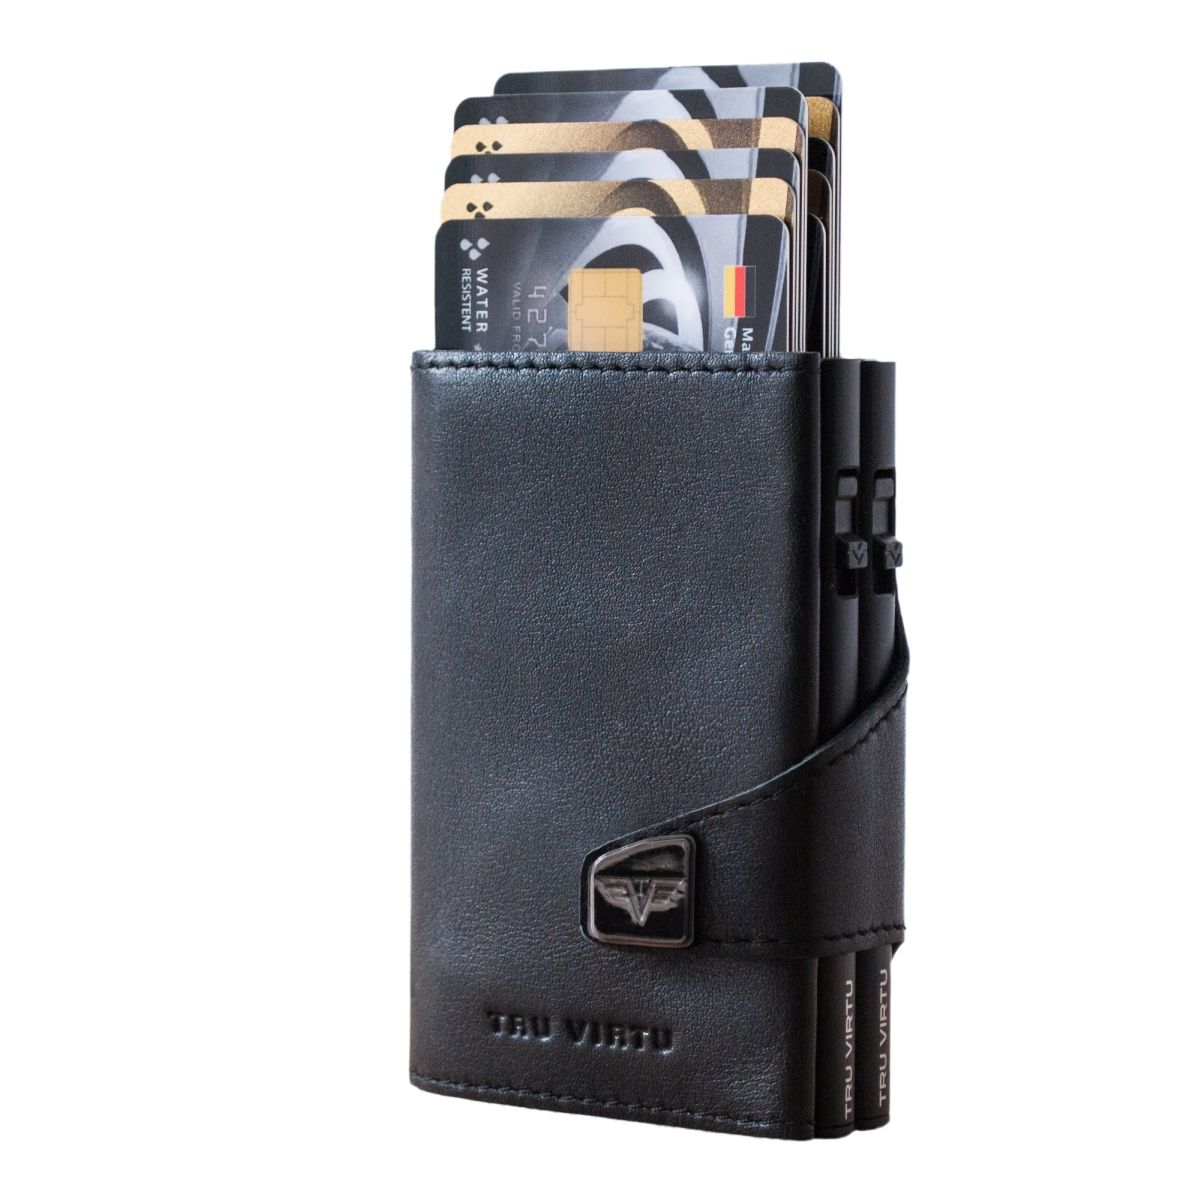 TRU VIRTU Click n Slide Double Wallet - Nappa Black